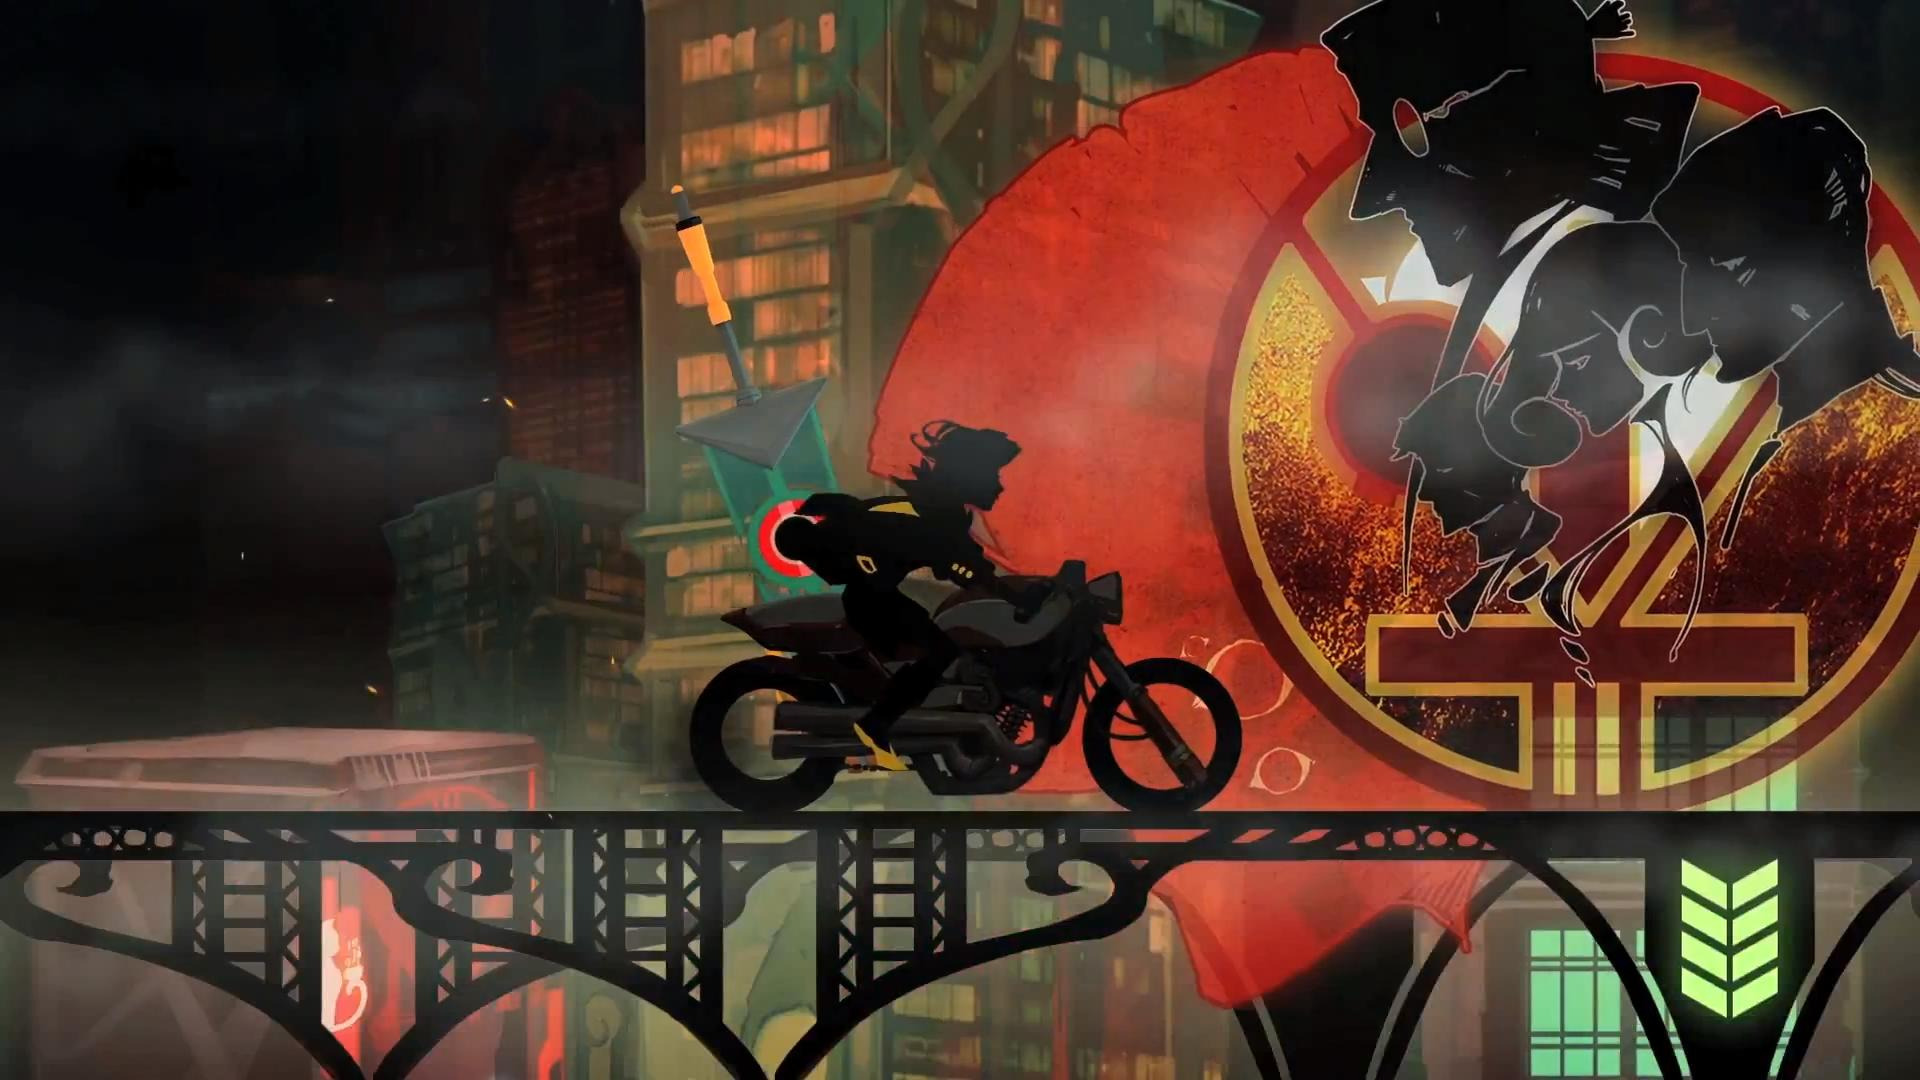 transistor game anime w wallpaper 1920x1080 169822